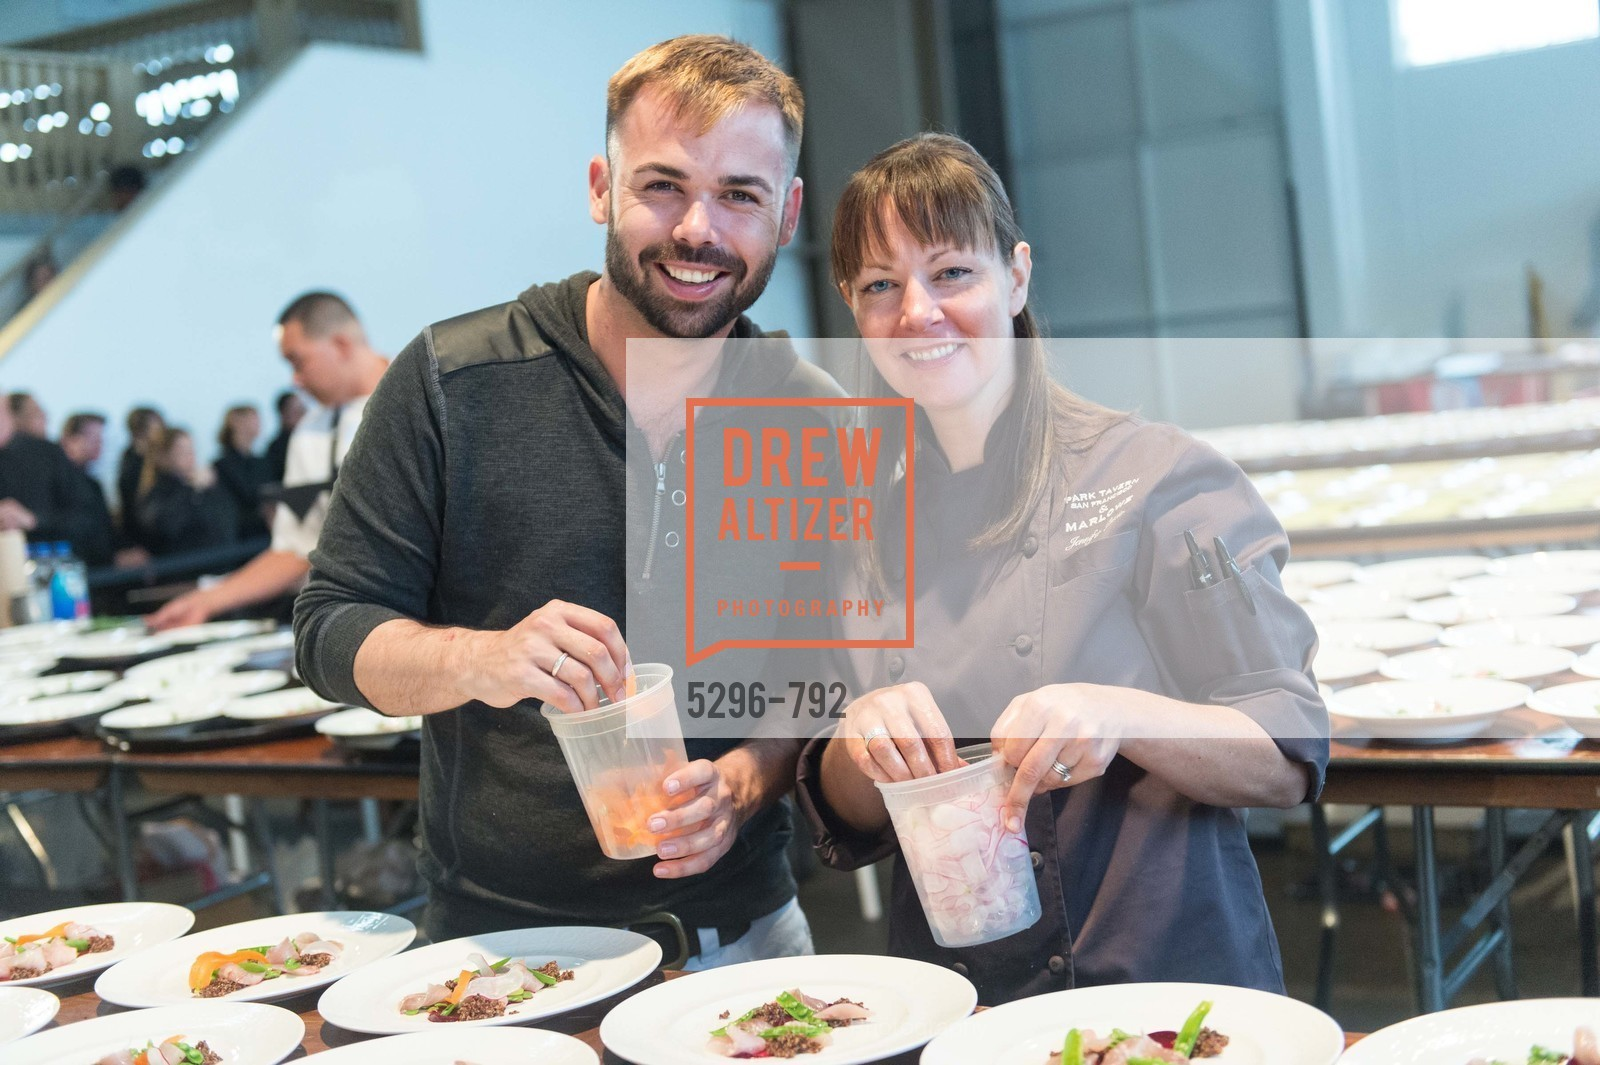 Bradley Waldon, Jennifer Puccio, MEALS ON WHEELS OF SAN FRANCISCO'S 28th Annual Star Chefs and Vintners Gala, US, April 20th, 2015,Drew Altizer, Drew Altizer Photography, full-service agency, private events, San Francisco photographer, photographer california